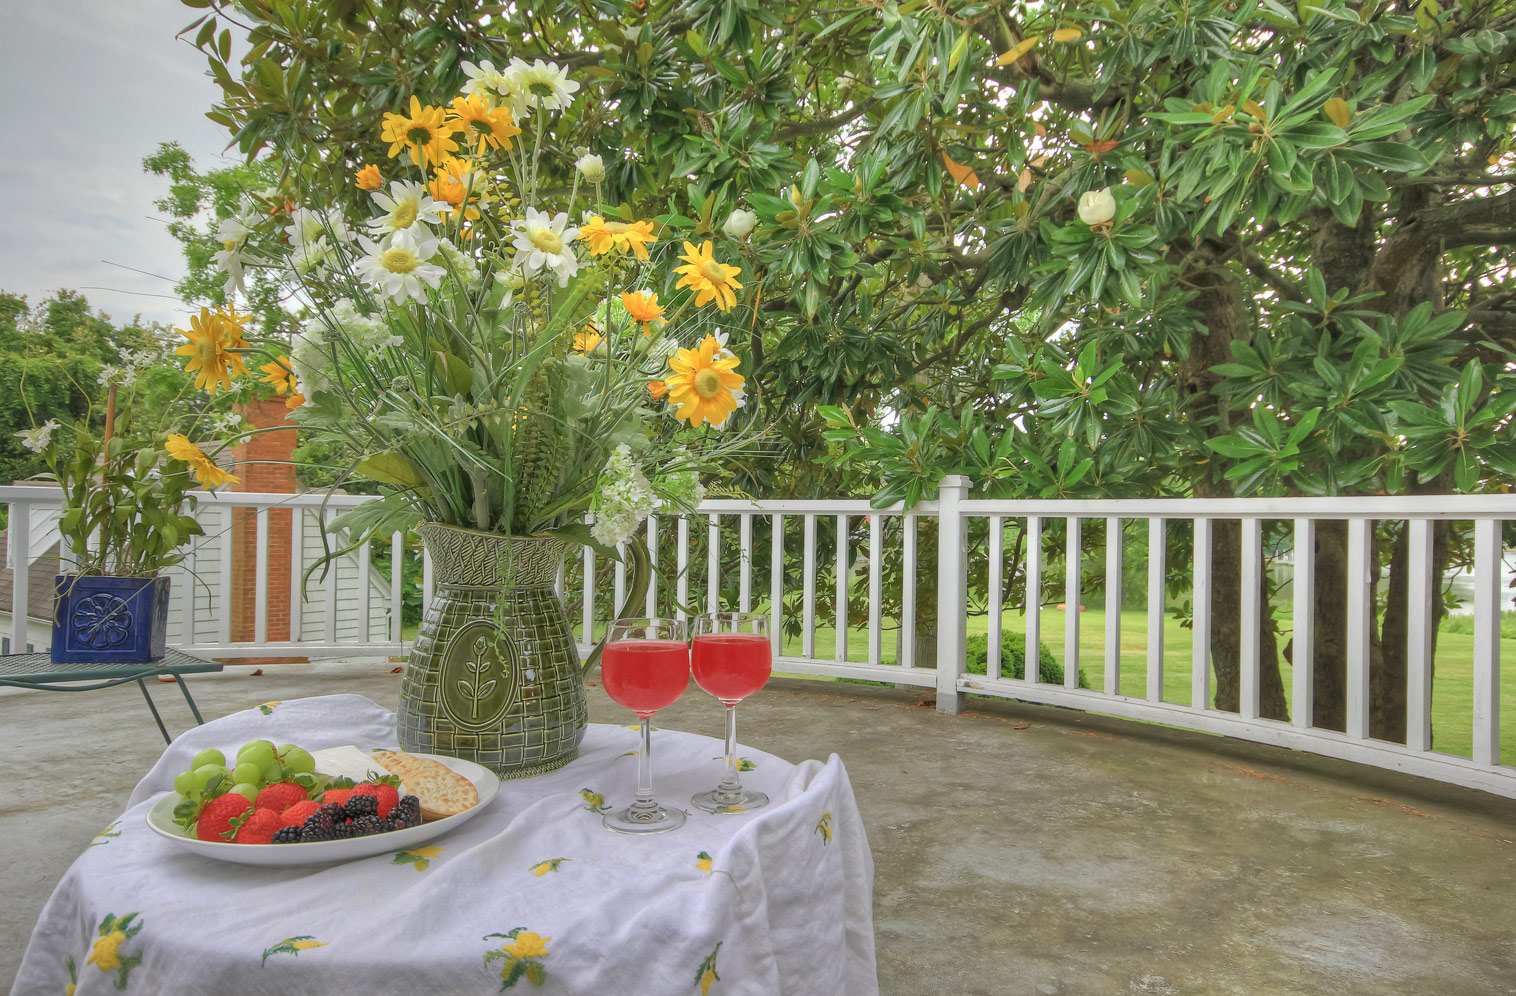 back deck table from room suite with wine fruit and cheese and flowers